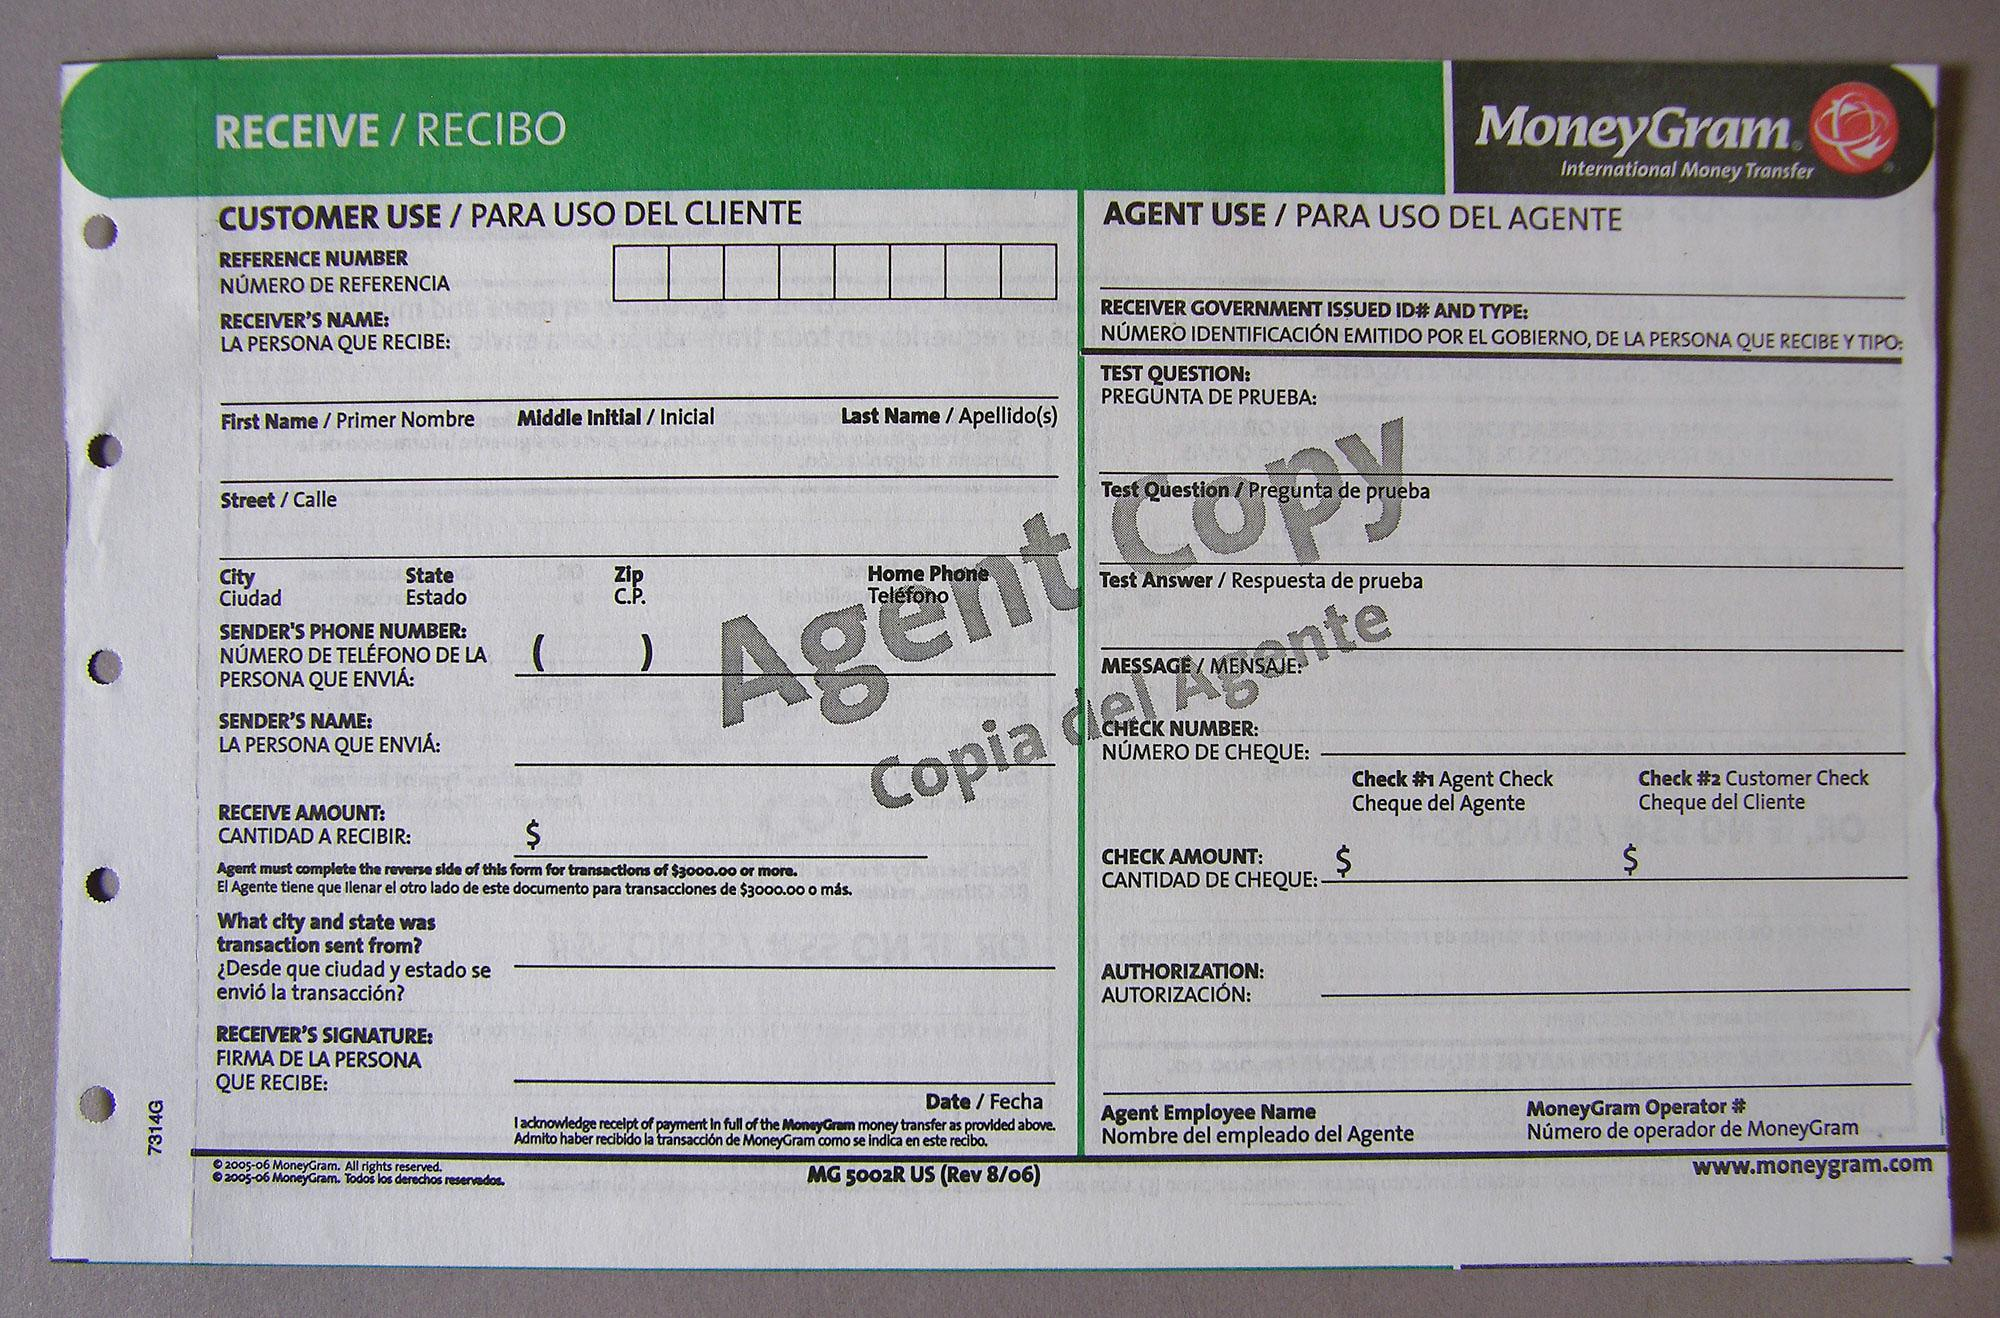 moneygram receive form 2010.96.3 | OMCA COLLECTIONS